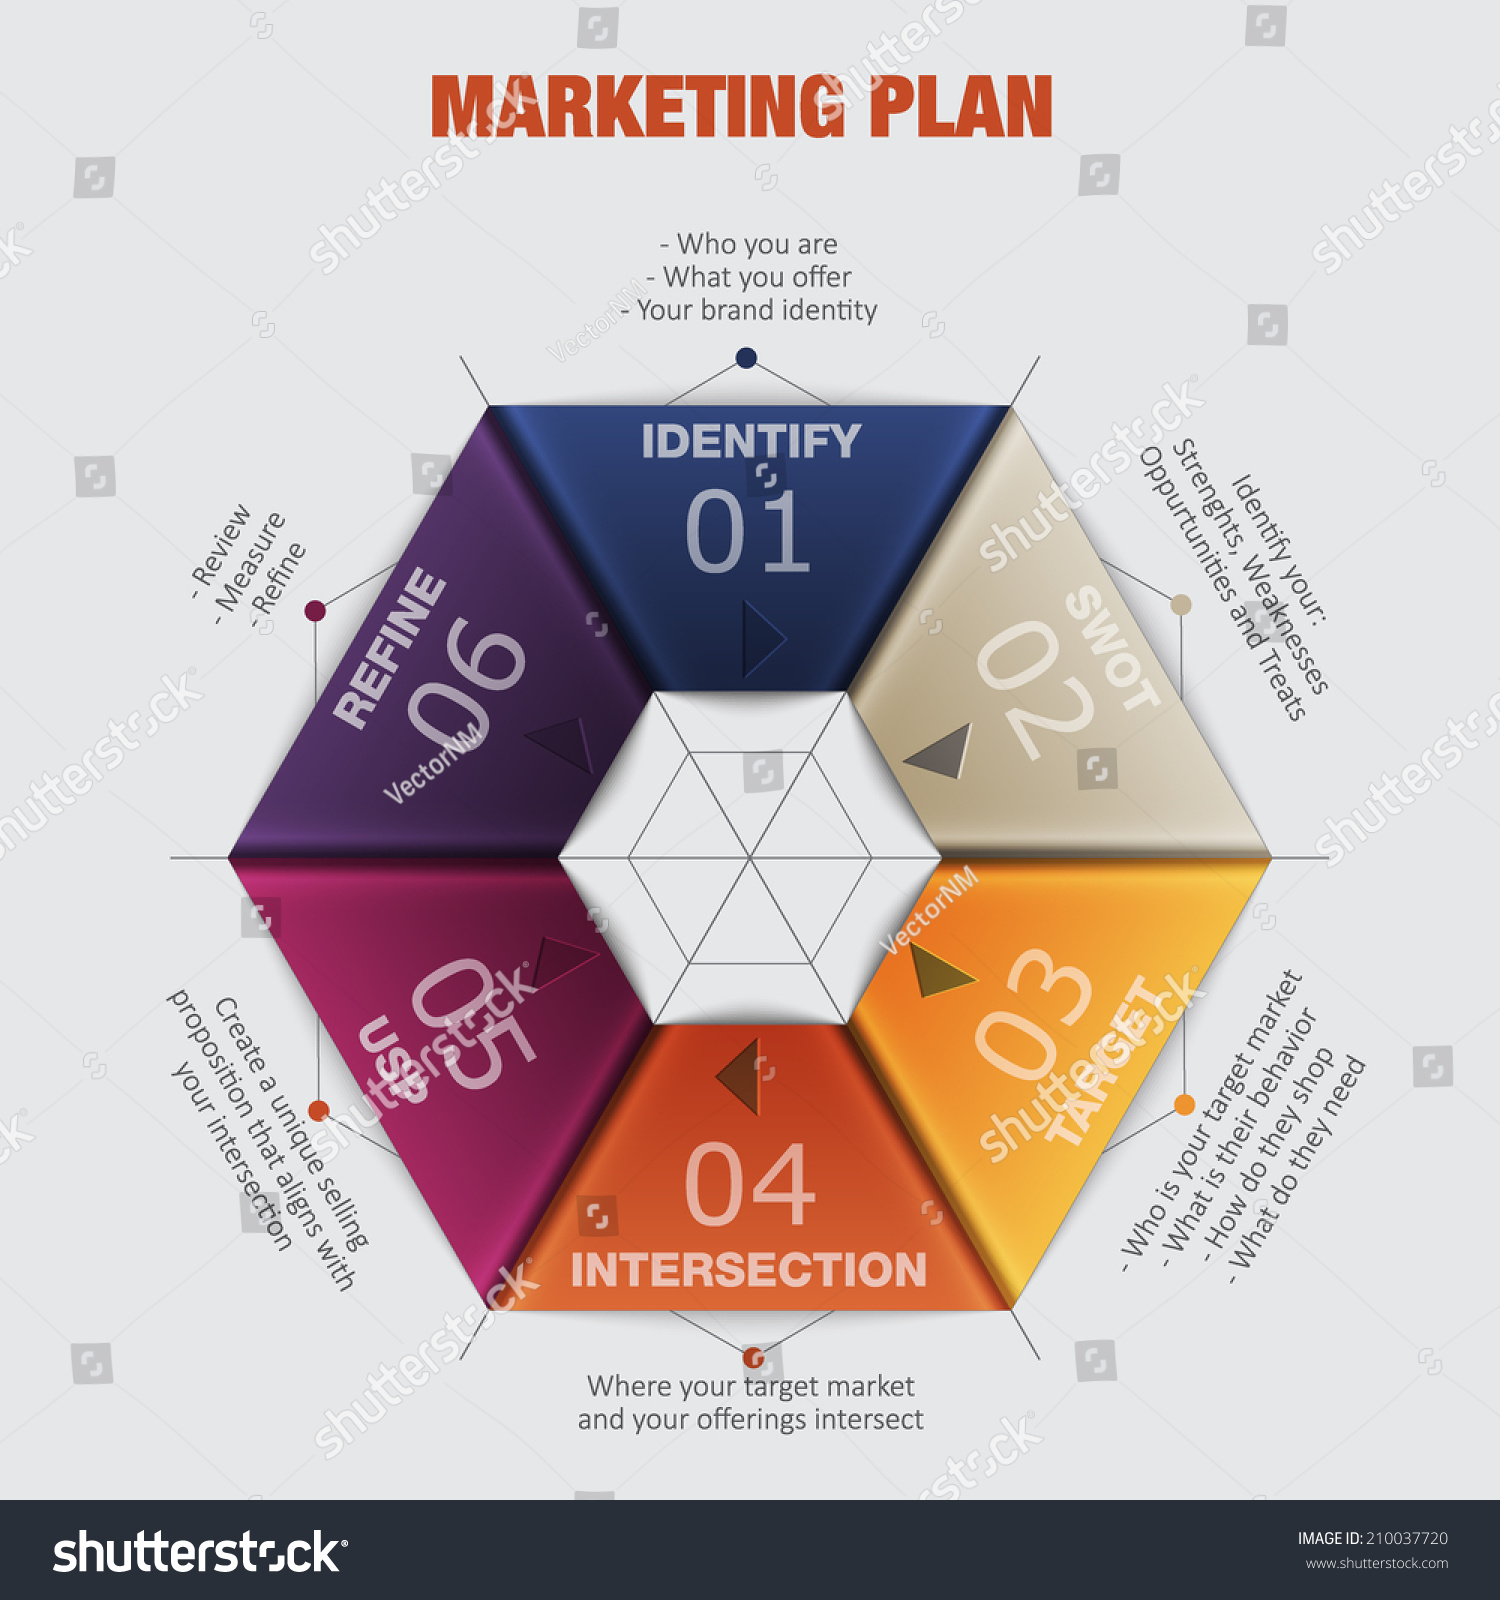 penshoppe marketing plan Research penshoppe no description by angie reyes on 25 february 2013 tweet comments (0) please log in to add your comment report abuse transcript of research.